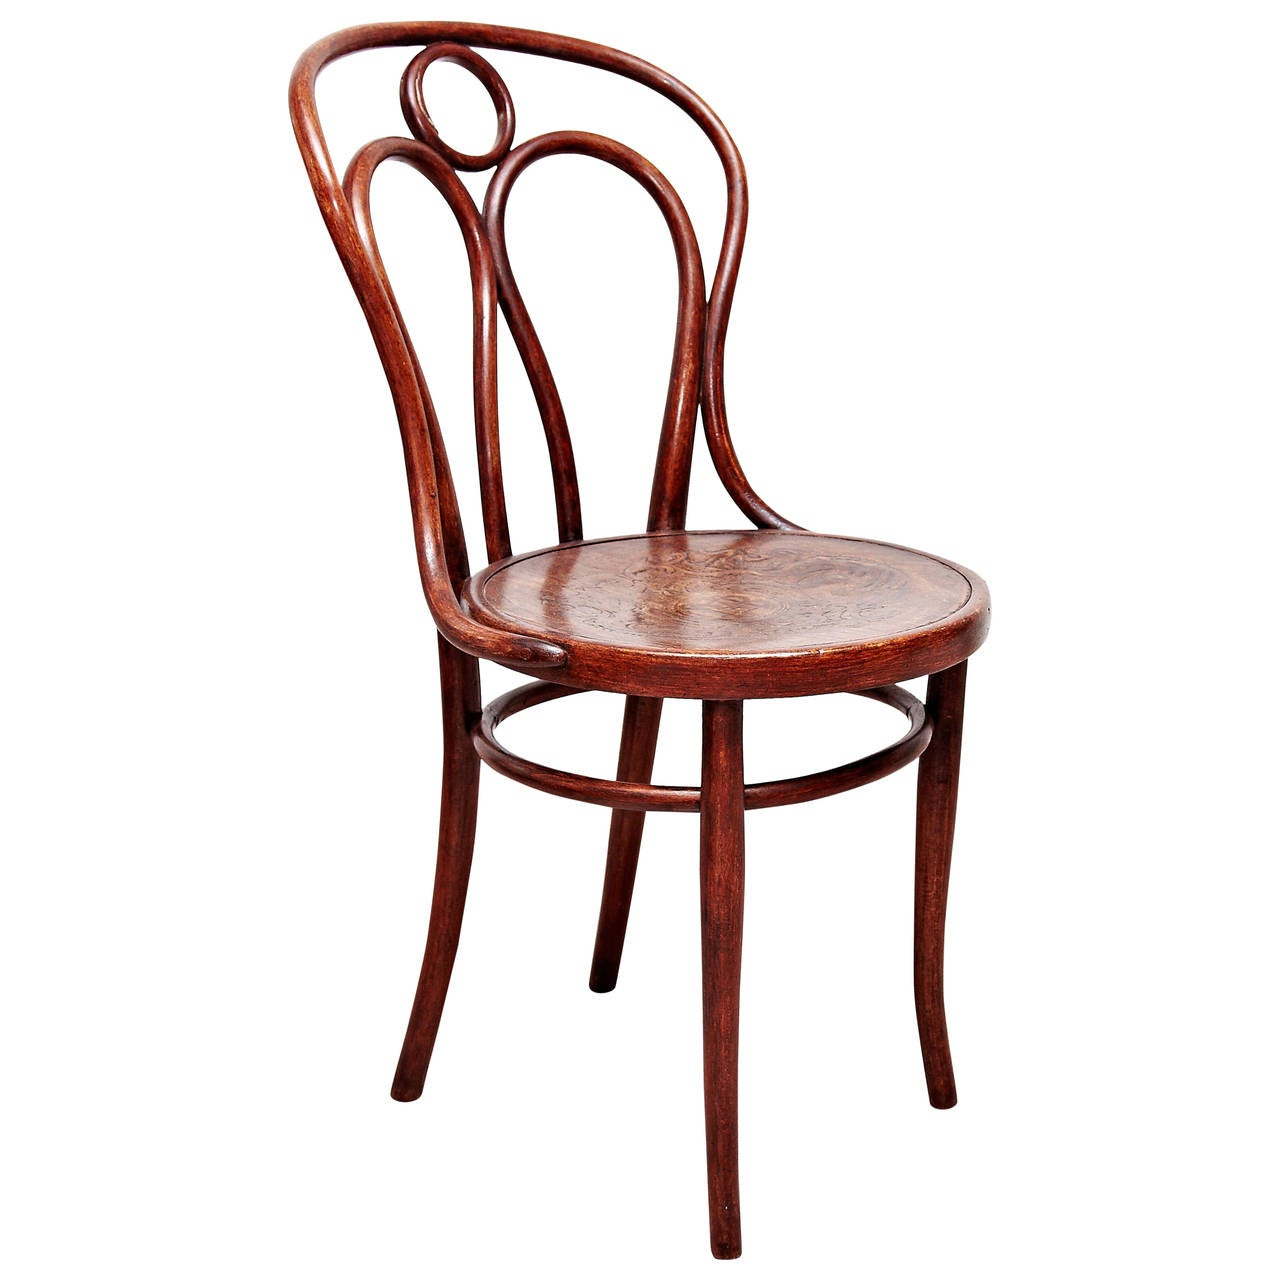 thonet chair styles covers price at 1stdibs